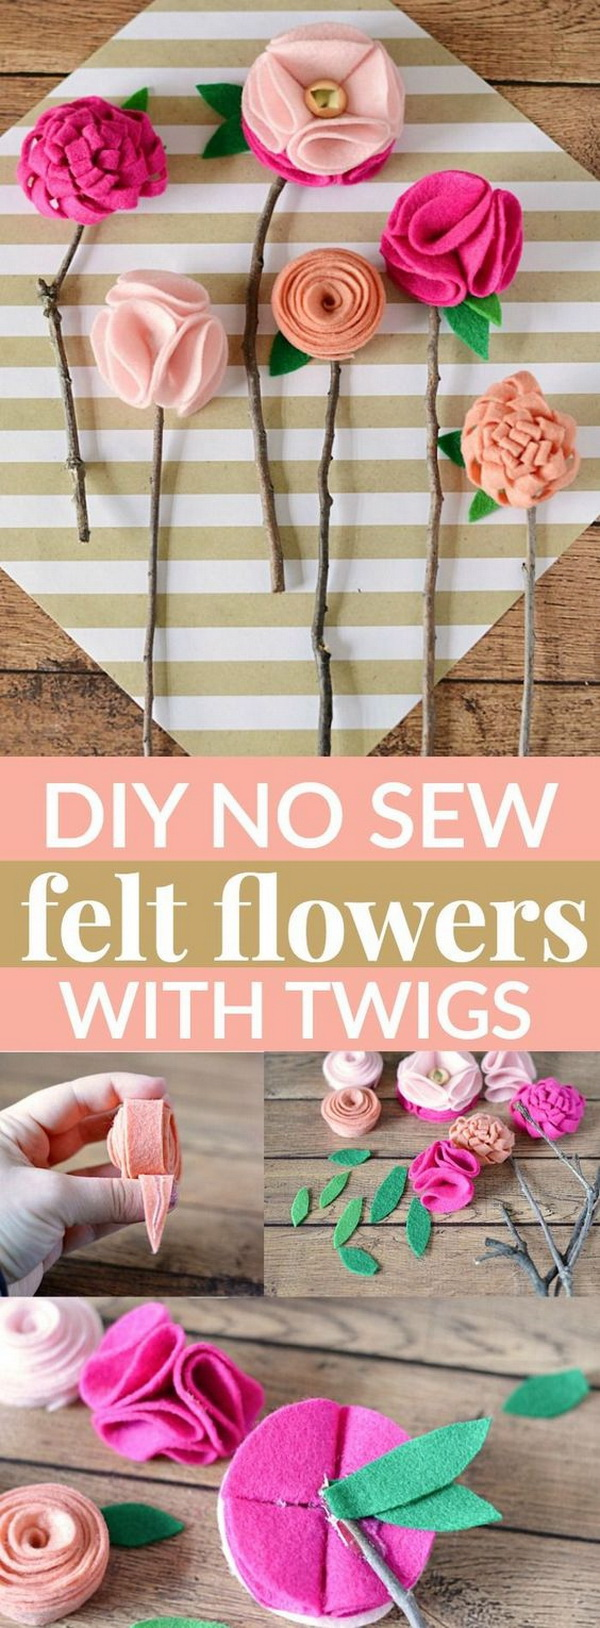 Easy Kids Craft Ideas: DIY No Sew Felt Flowers With Twigs.